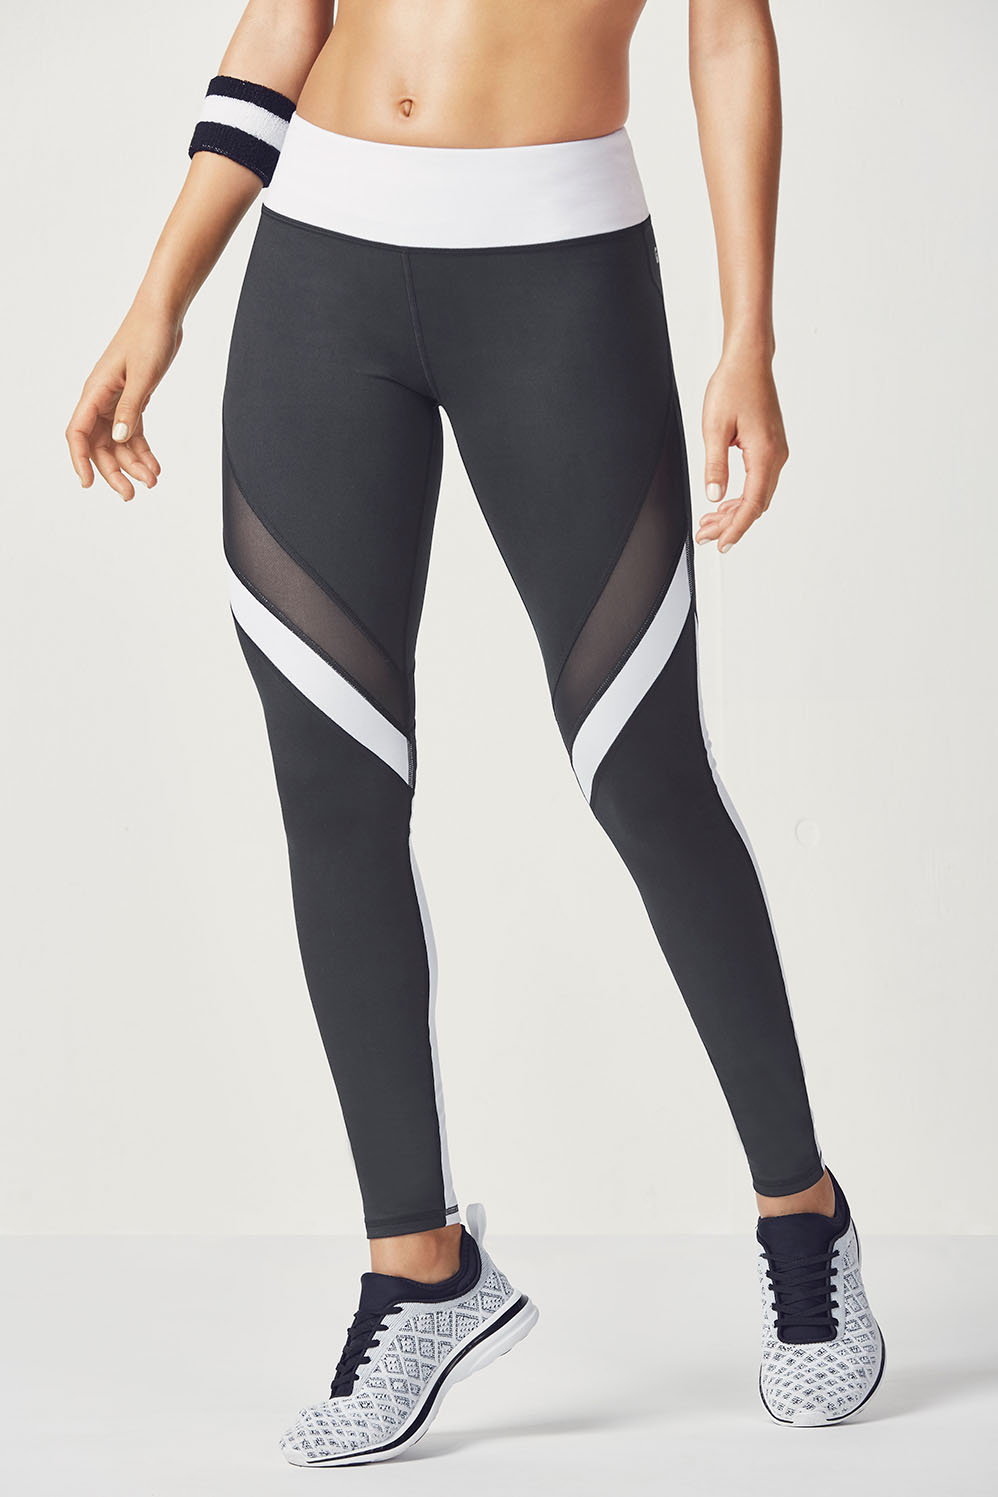 salar mesh powerhold legging fabletics. Black Bedroom Furniture Sets. Home Design Ideas